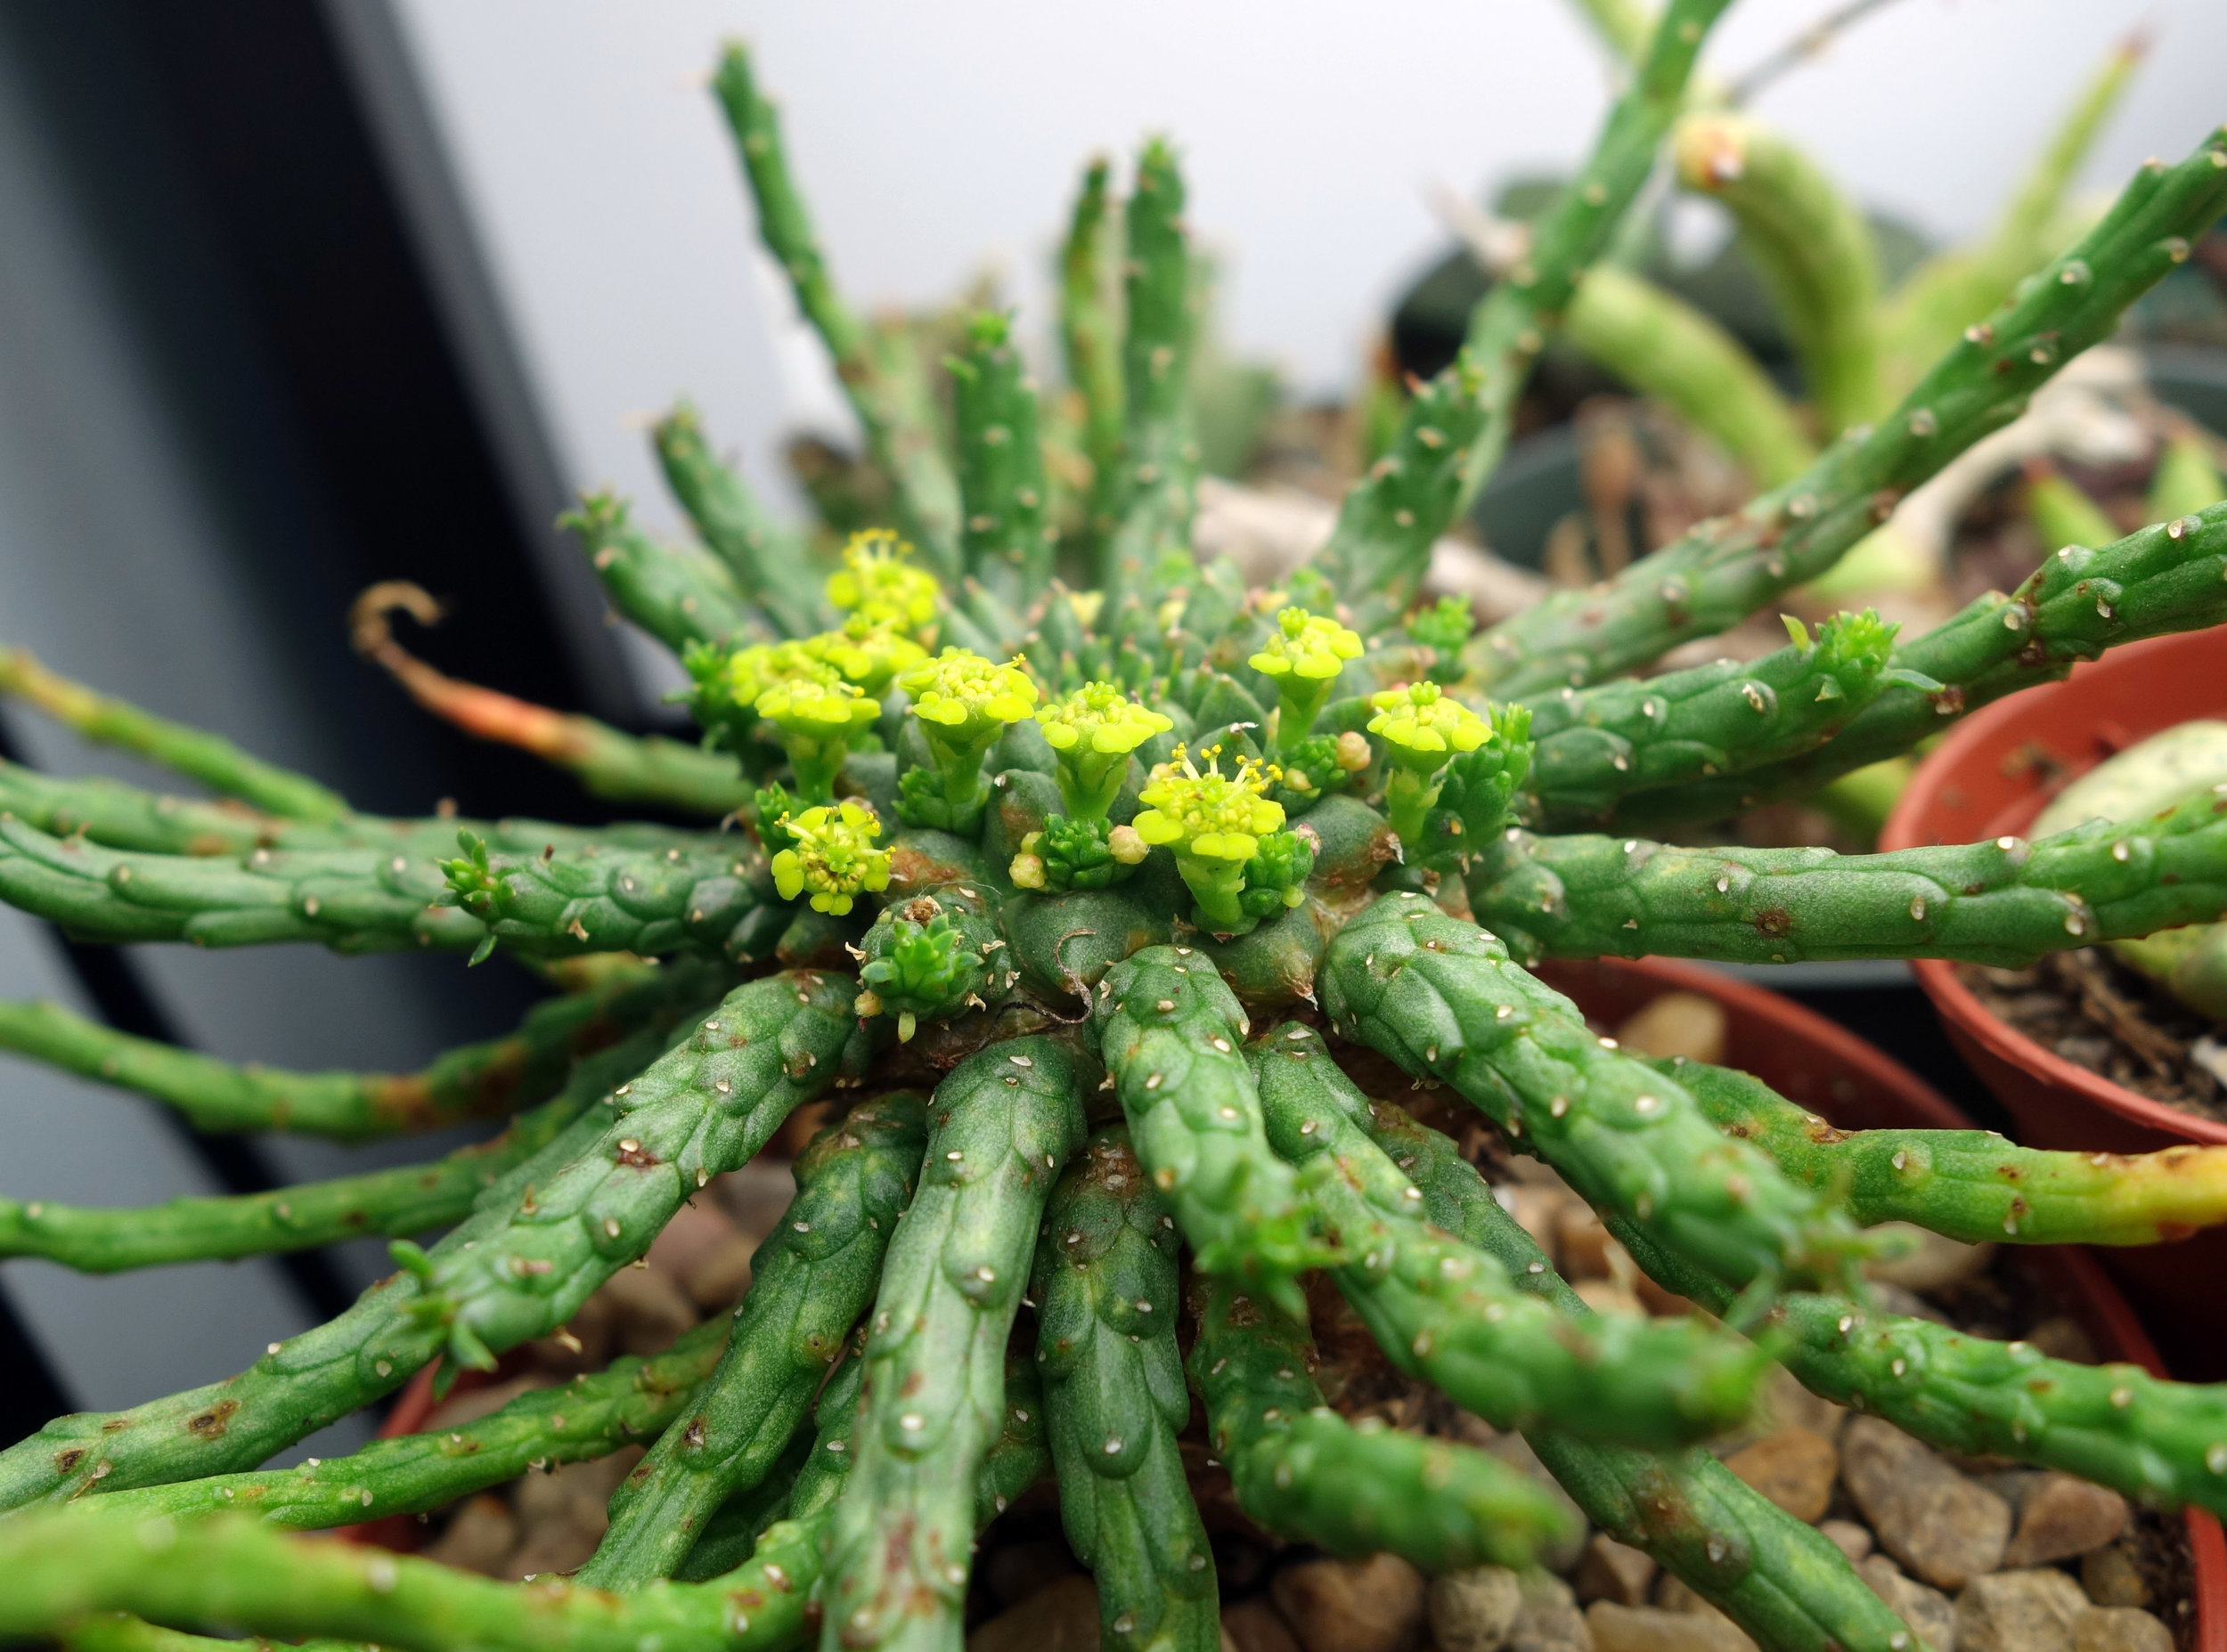 Euphorbia medusae Dec16 flowering.jpg